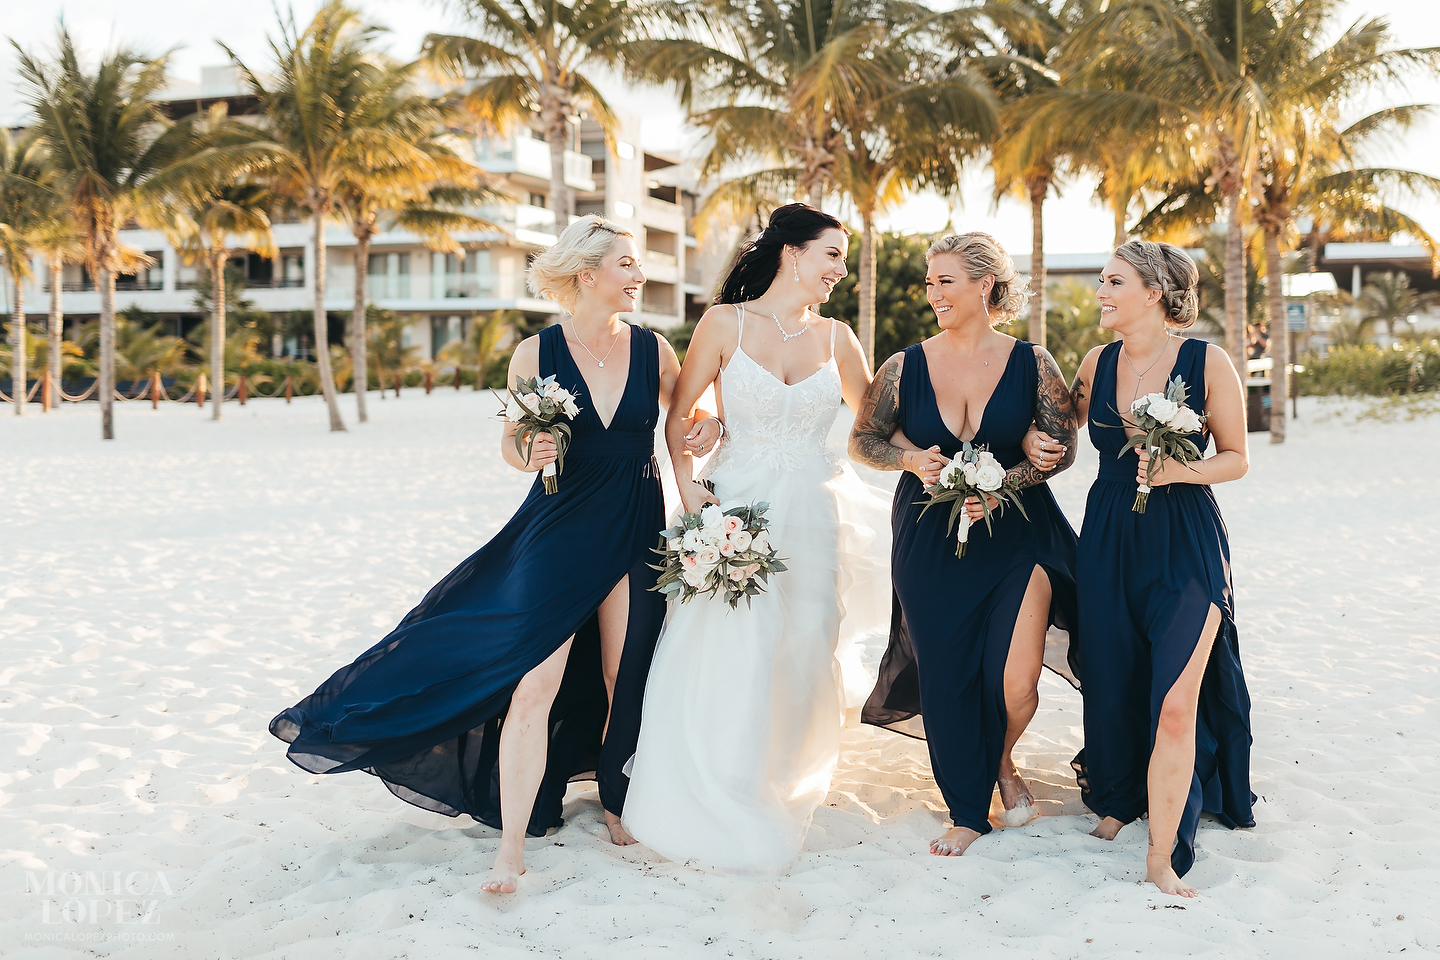 Royalton Riviera Cancun Wedding by Monica Lopez Photography